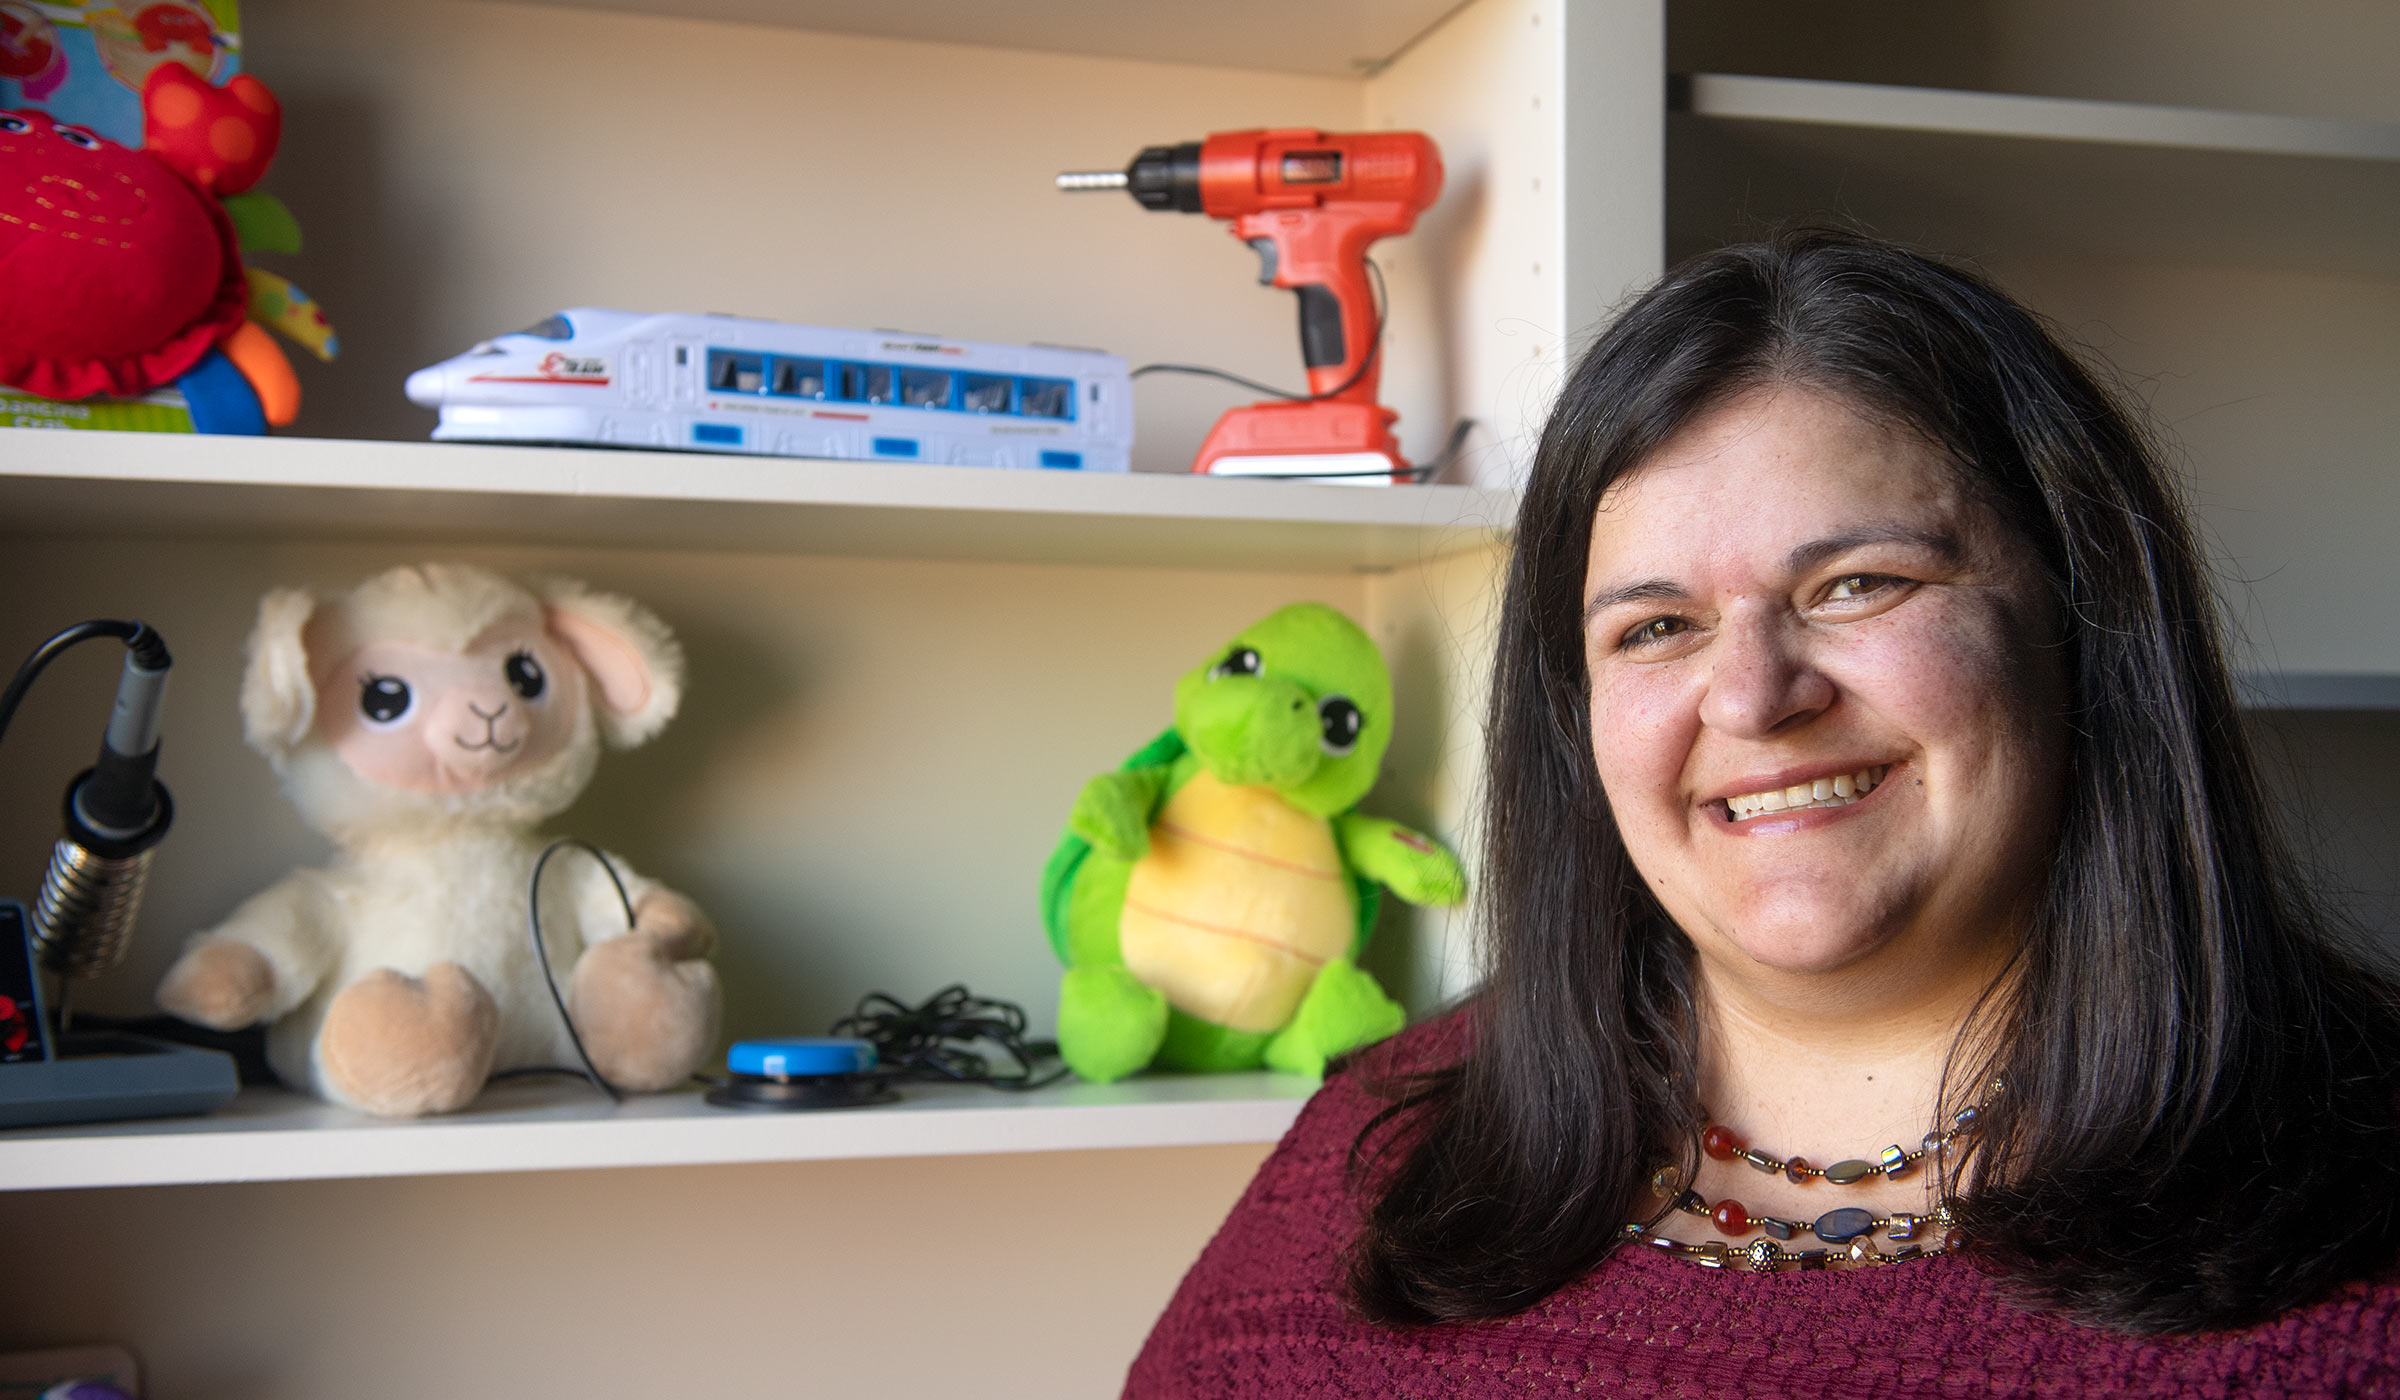 Jean Mohammadi-Aragh, pictured in front of a shelf of toys in her office.